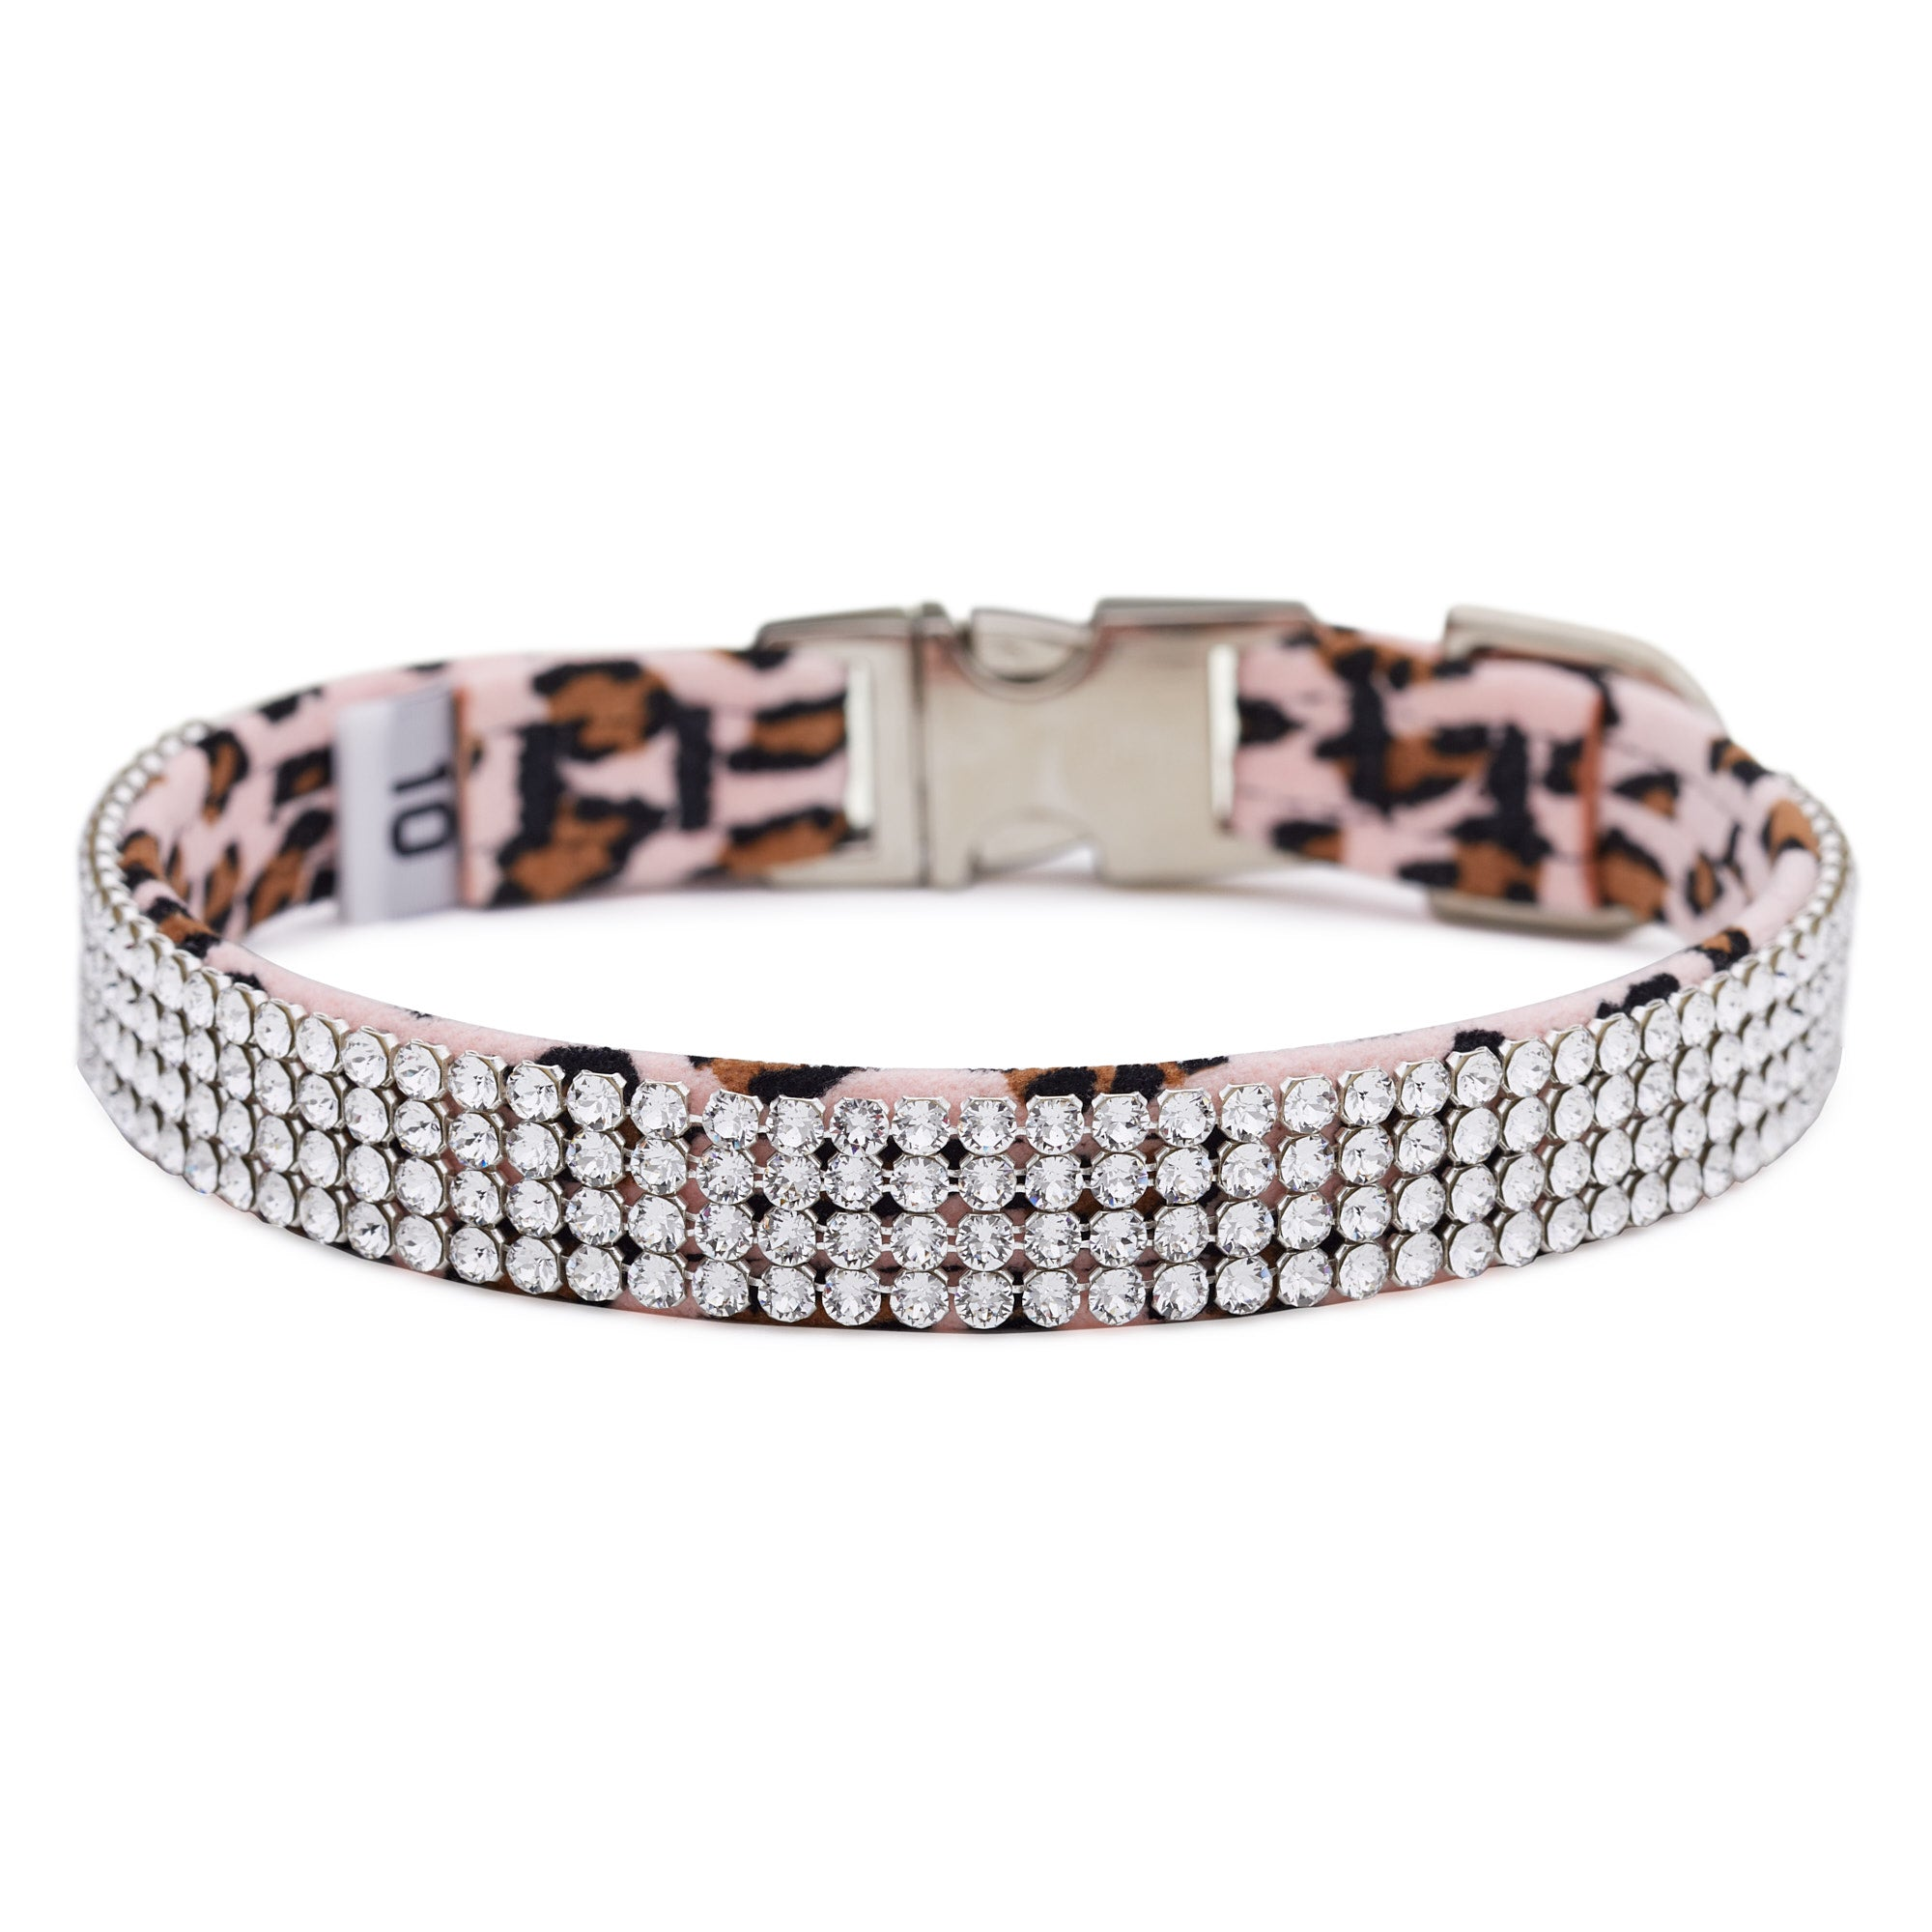 Pink Cheetah 4 Row Giltmore Perfect Fit Collar